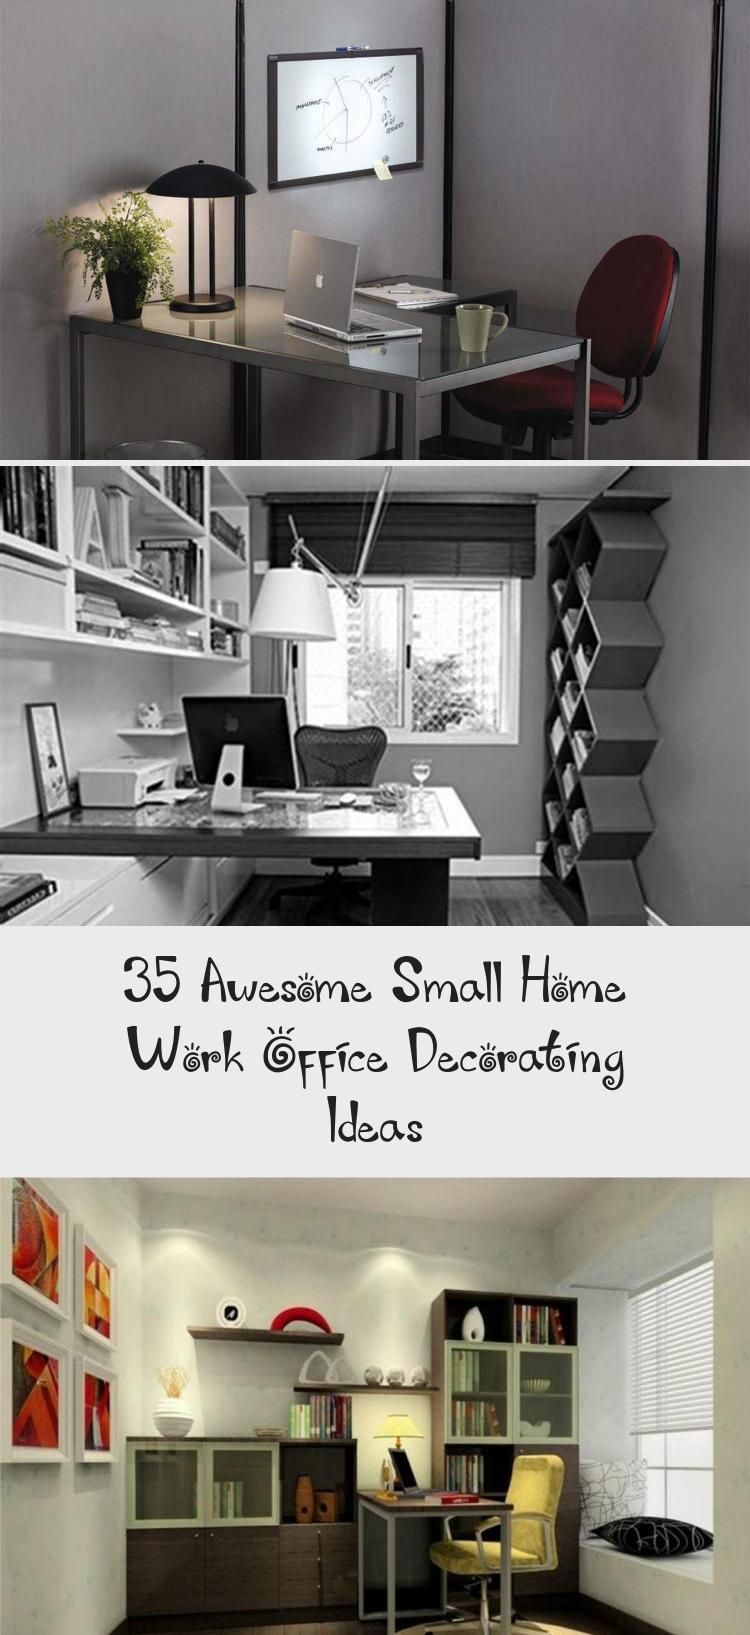 35 Awesome Small Home Work Office Decorating Ideas Decor